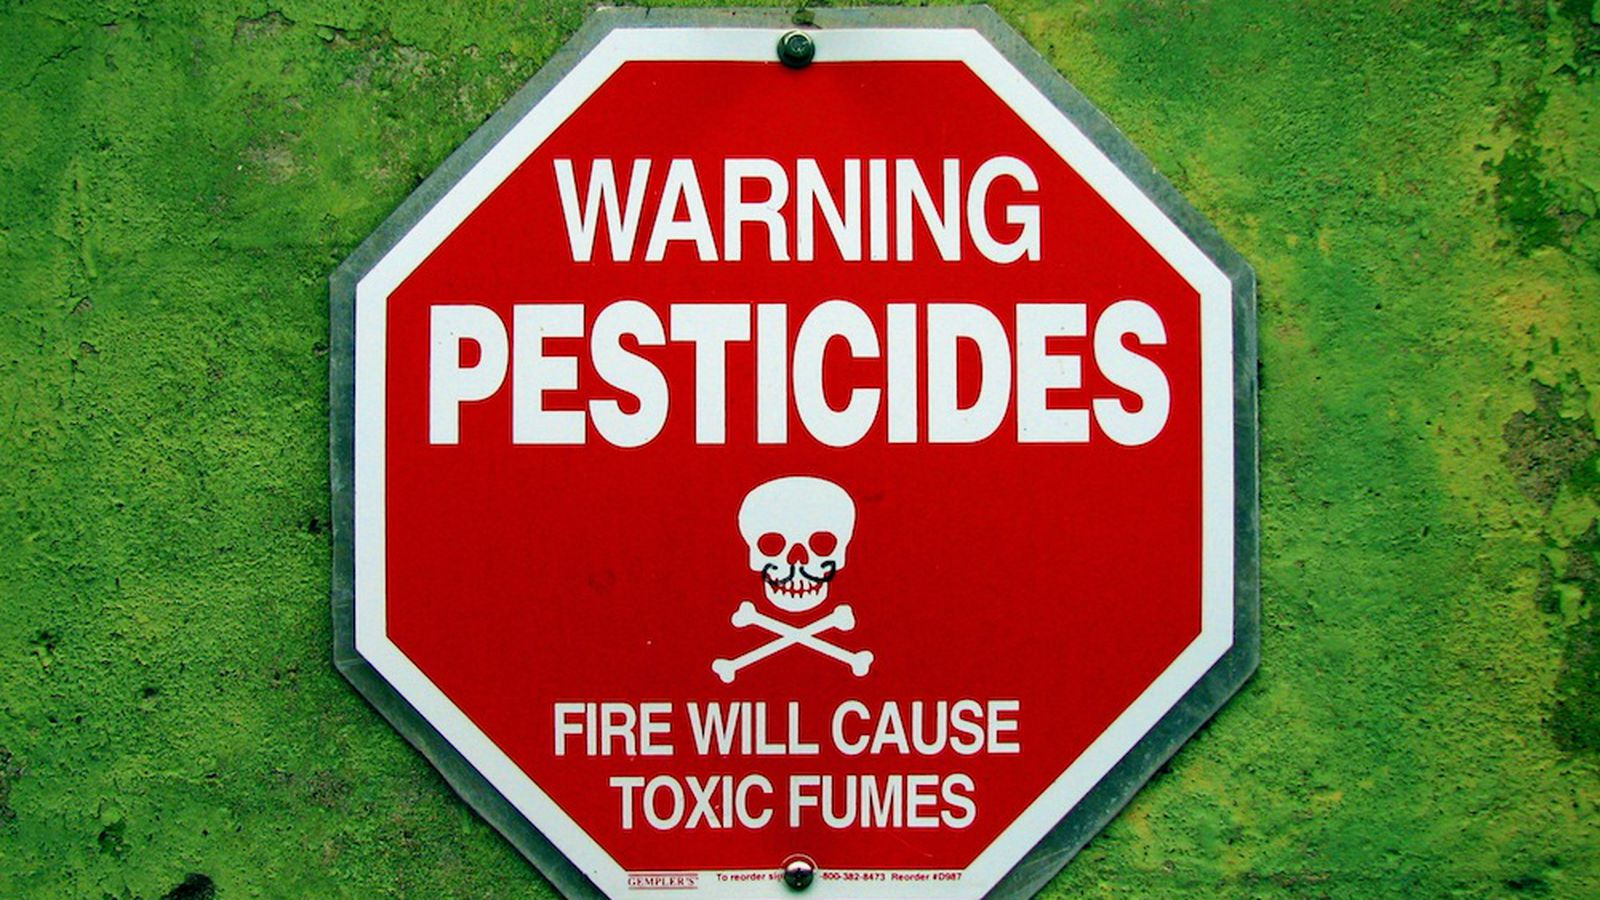 Pesticides are everywhere, and more dangerous than you realize - The Verge